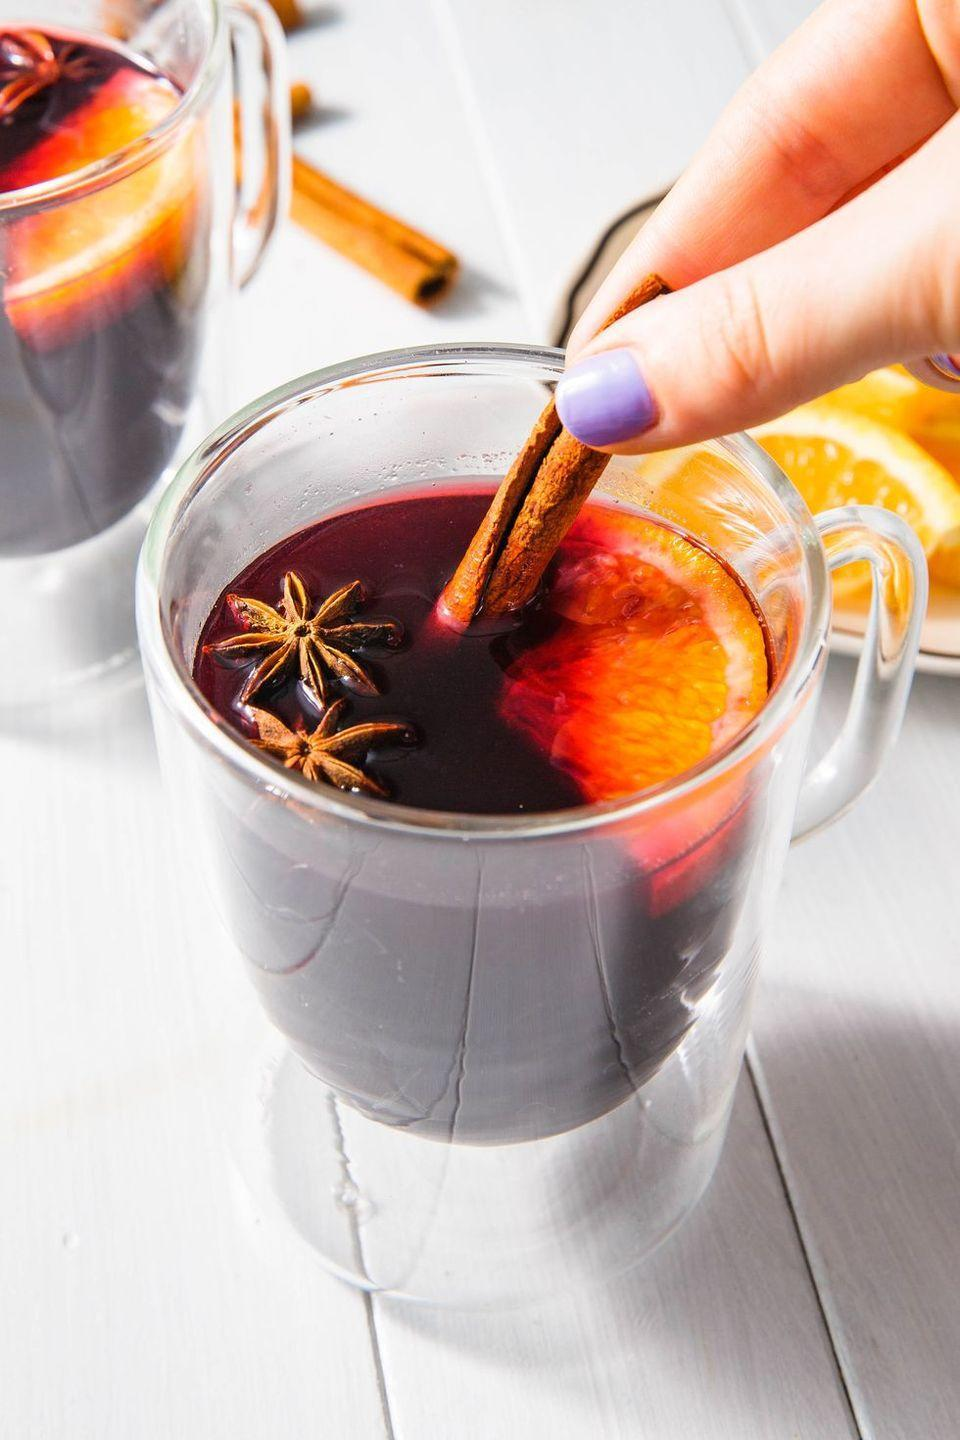 """<p>It's not Christmas time without at least one batch of mulled wine. Lucky for you, this simple recipe couldn't be easier: Just combine a bottle of red wine with some wintery spices, brandy, honey, and orange slices, then let it simmer—and prepare for coziness.</p><p><strong>Get the recipe at <a href=""""https://www.delish.com/cooking/recipe-ideas/a23364385/mulled-wine-recipe/"""" rel=""""nofollow noopener"""" target=""""_blank"""" data-ylk=""""slk:Delish"""" class=""""link rapid-noclick-resp"""">Delish</a>.</strong> </p>"""